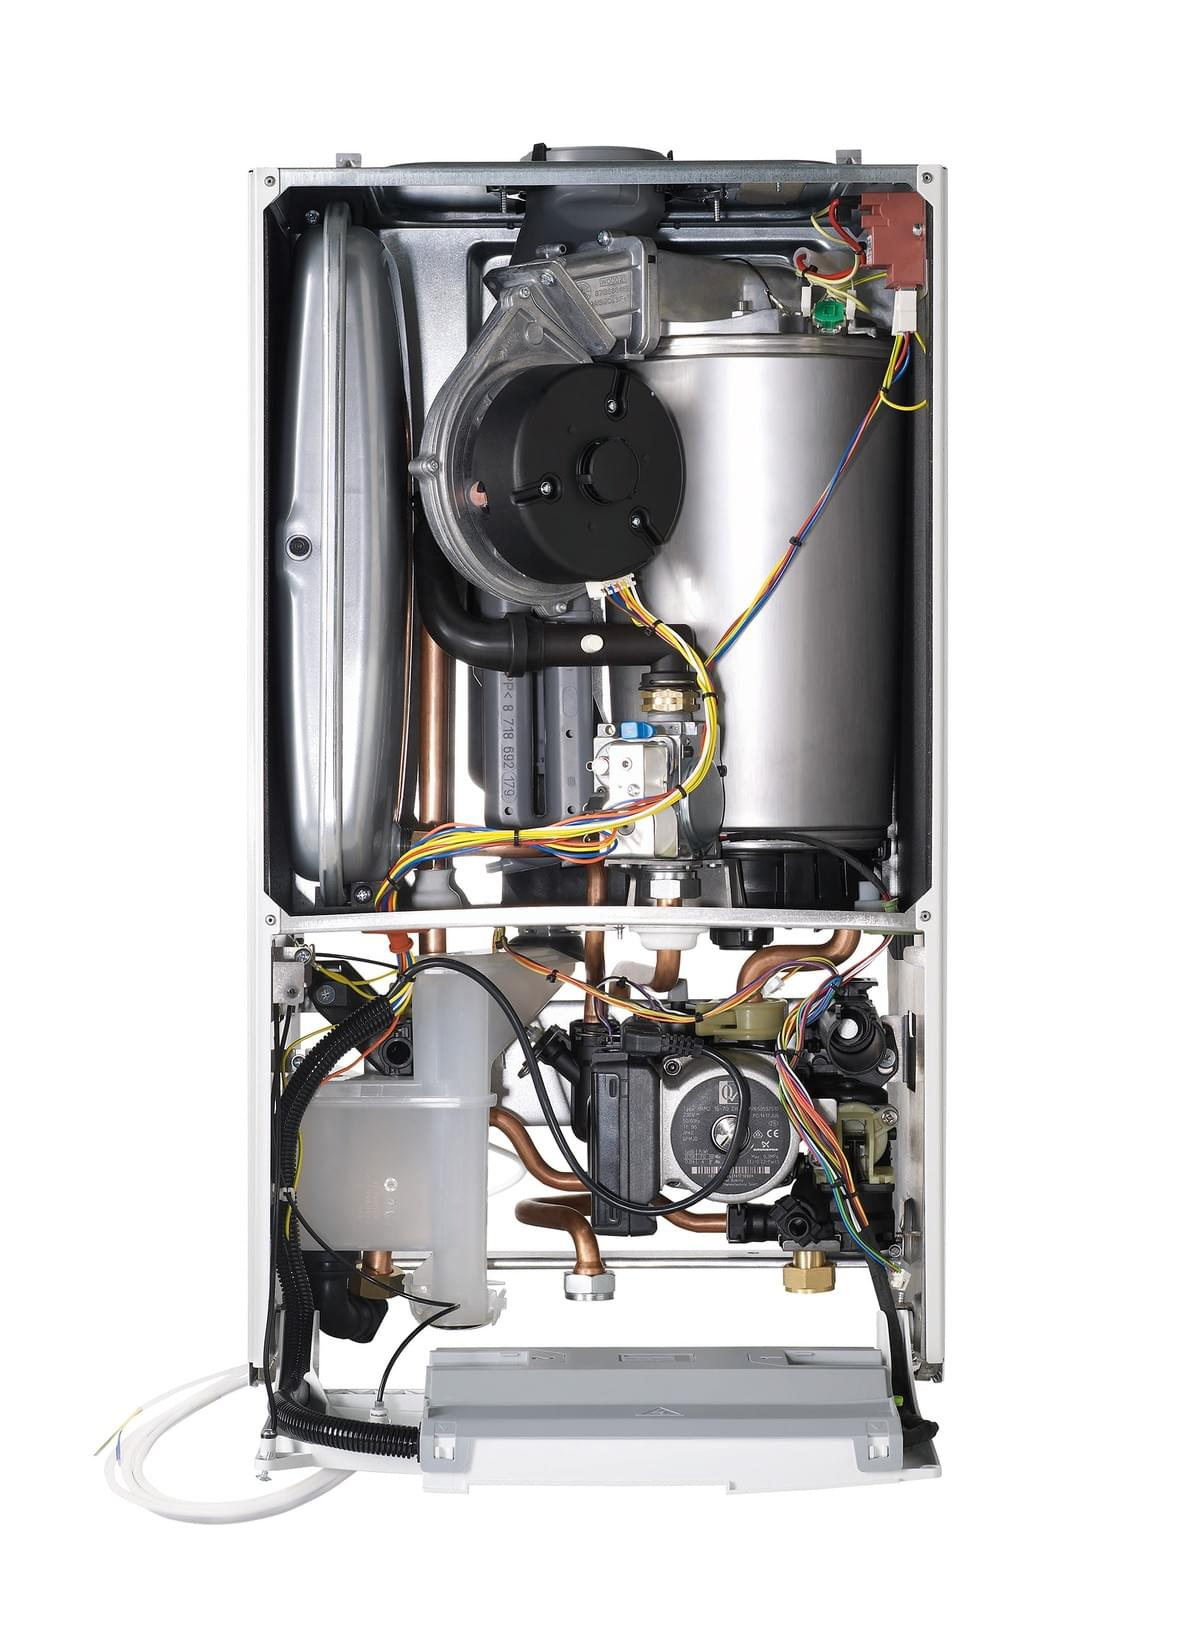 Do I need to service my boiler?